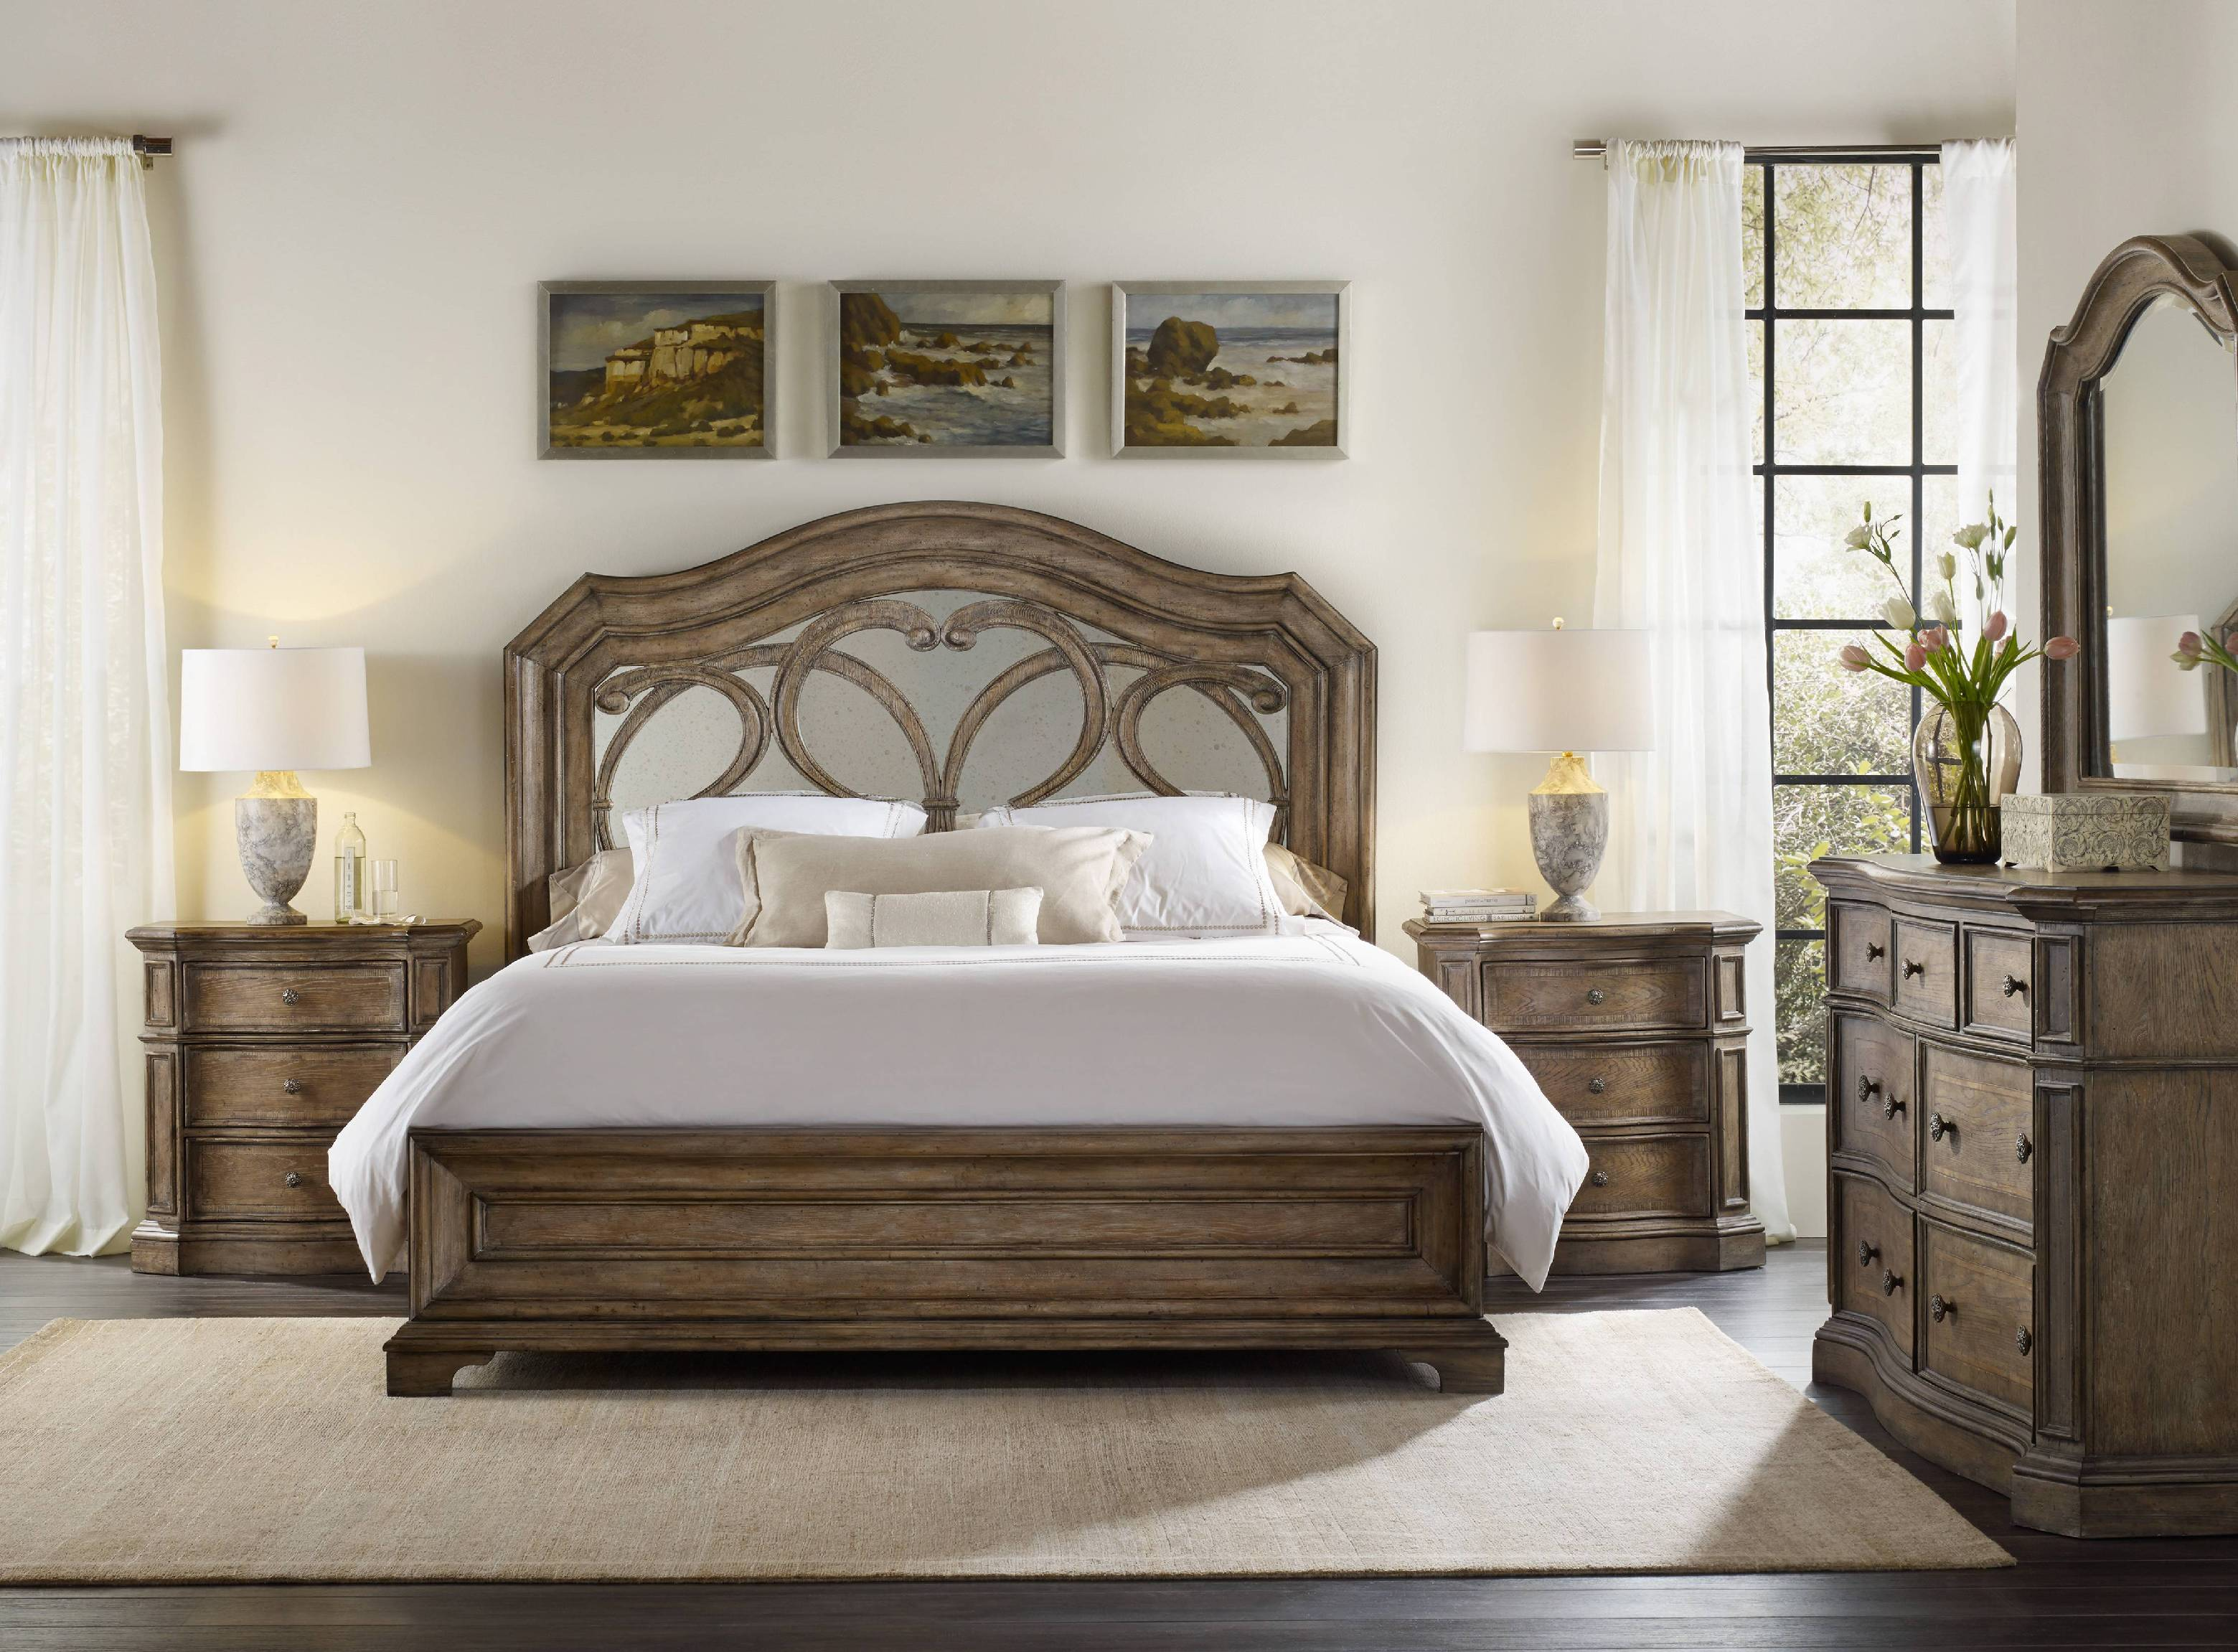 Bedroom Furniture For King Size Bed